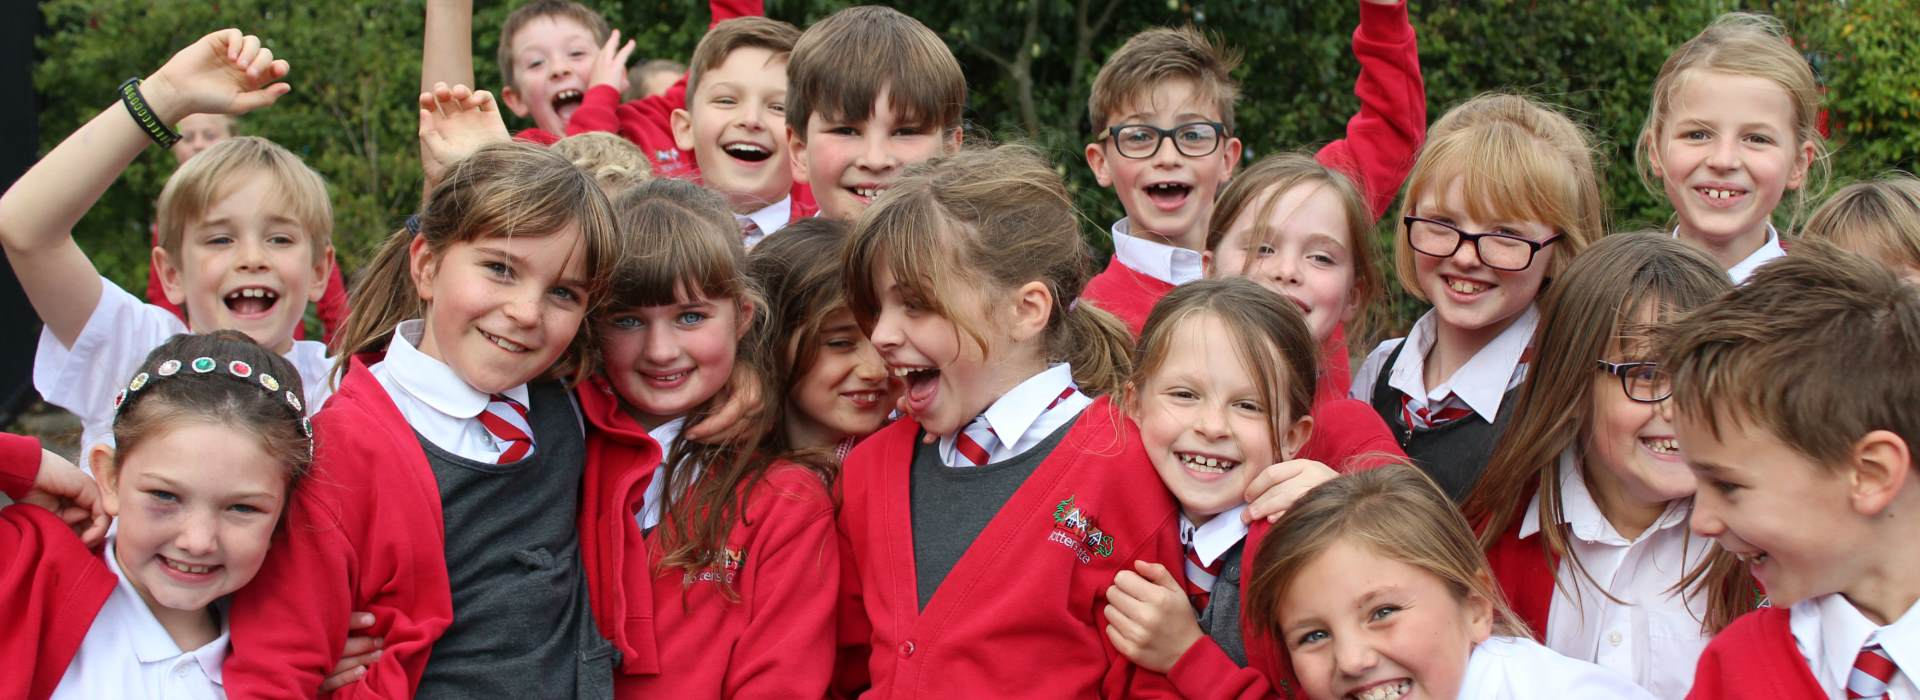 Life at Potters Gate CofE Primary School